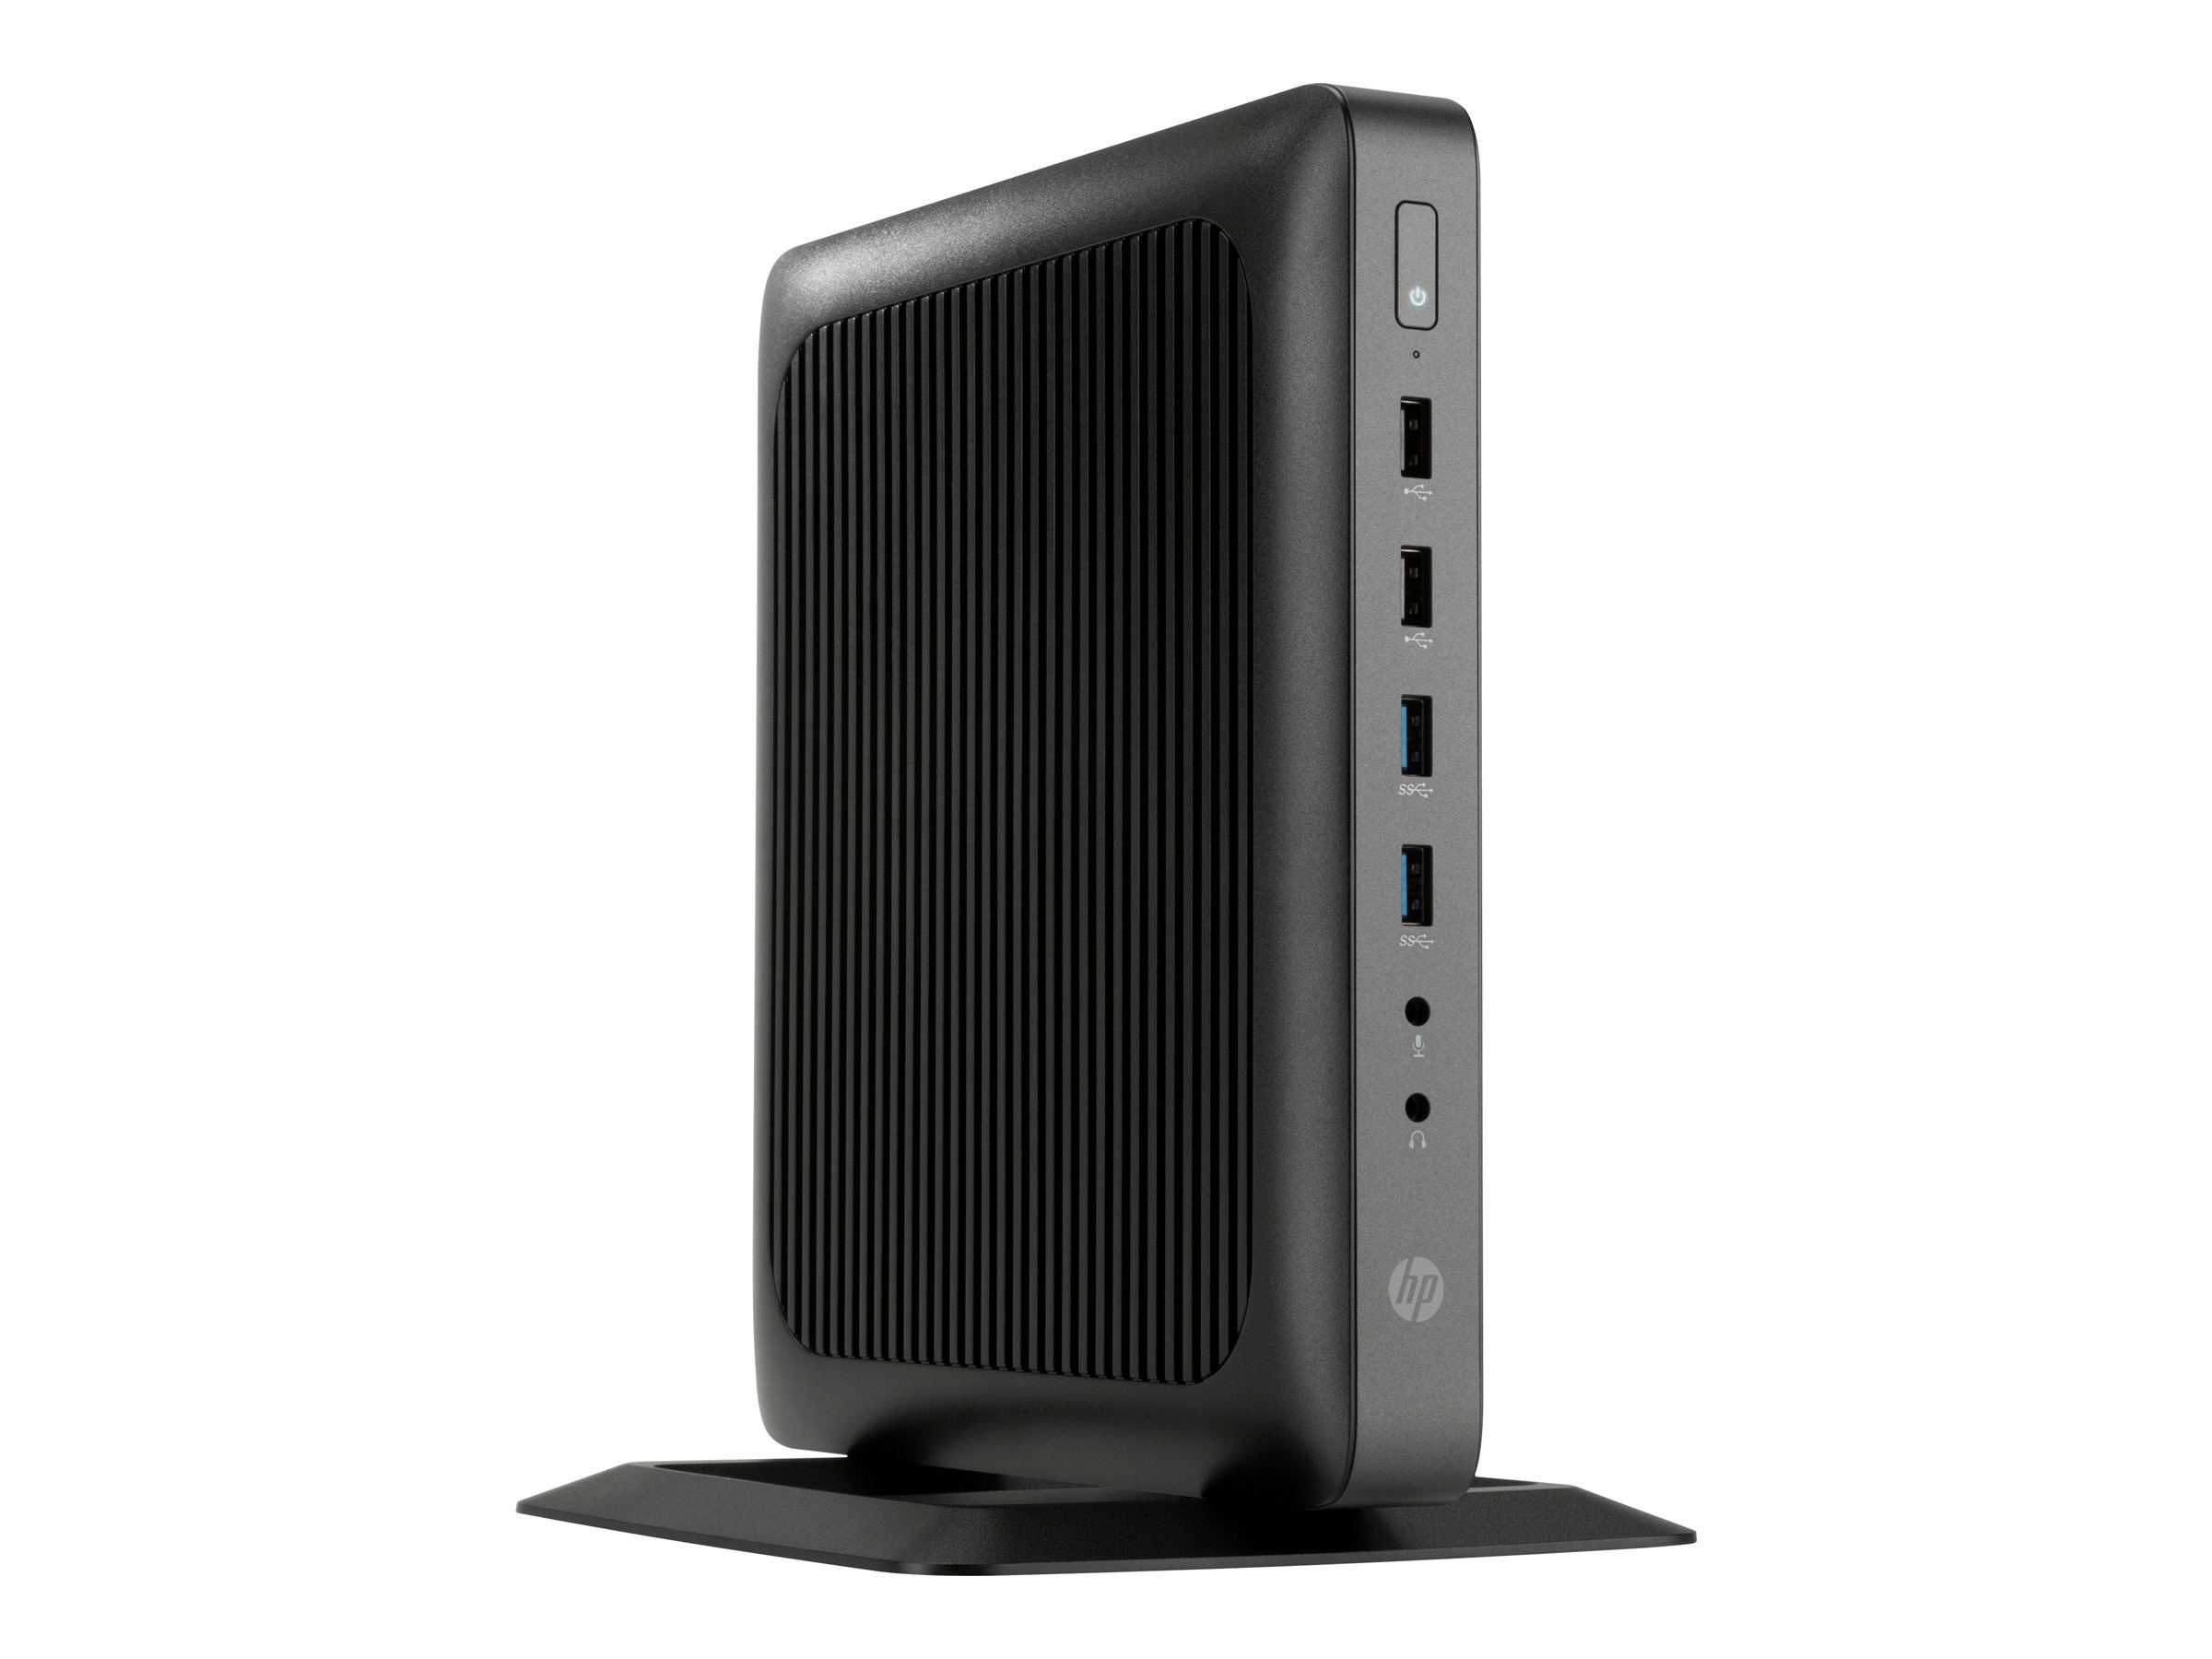 HP t620 Flexible Thin Client AMD QC GX-415GA 1.5GHz 4GB RAM 16GB Flash GbE VGA WES7E, G4V27UA#ABA